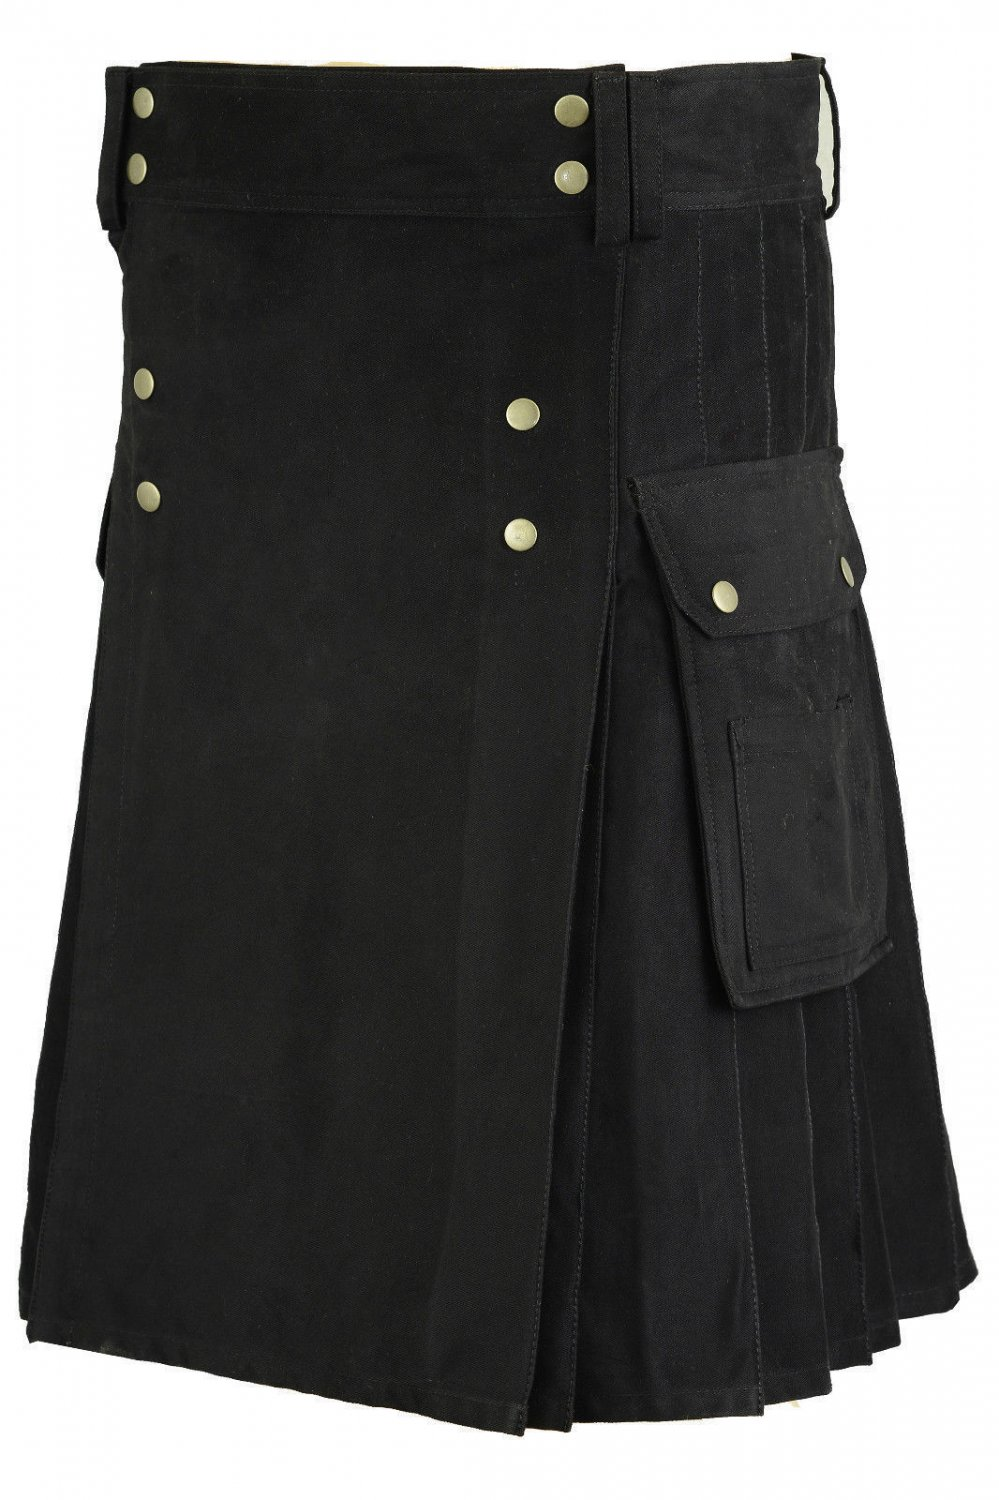 Gothic Black Cotton Outdoor Kilt for Men 28 Size Utility Kilt with Brass Material